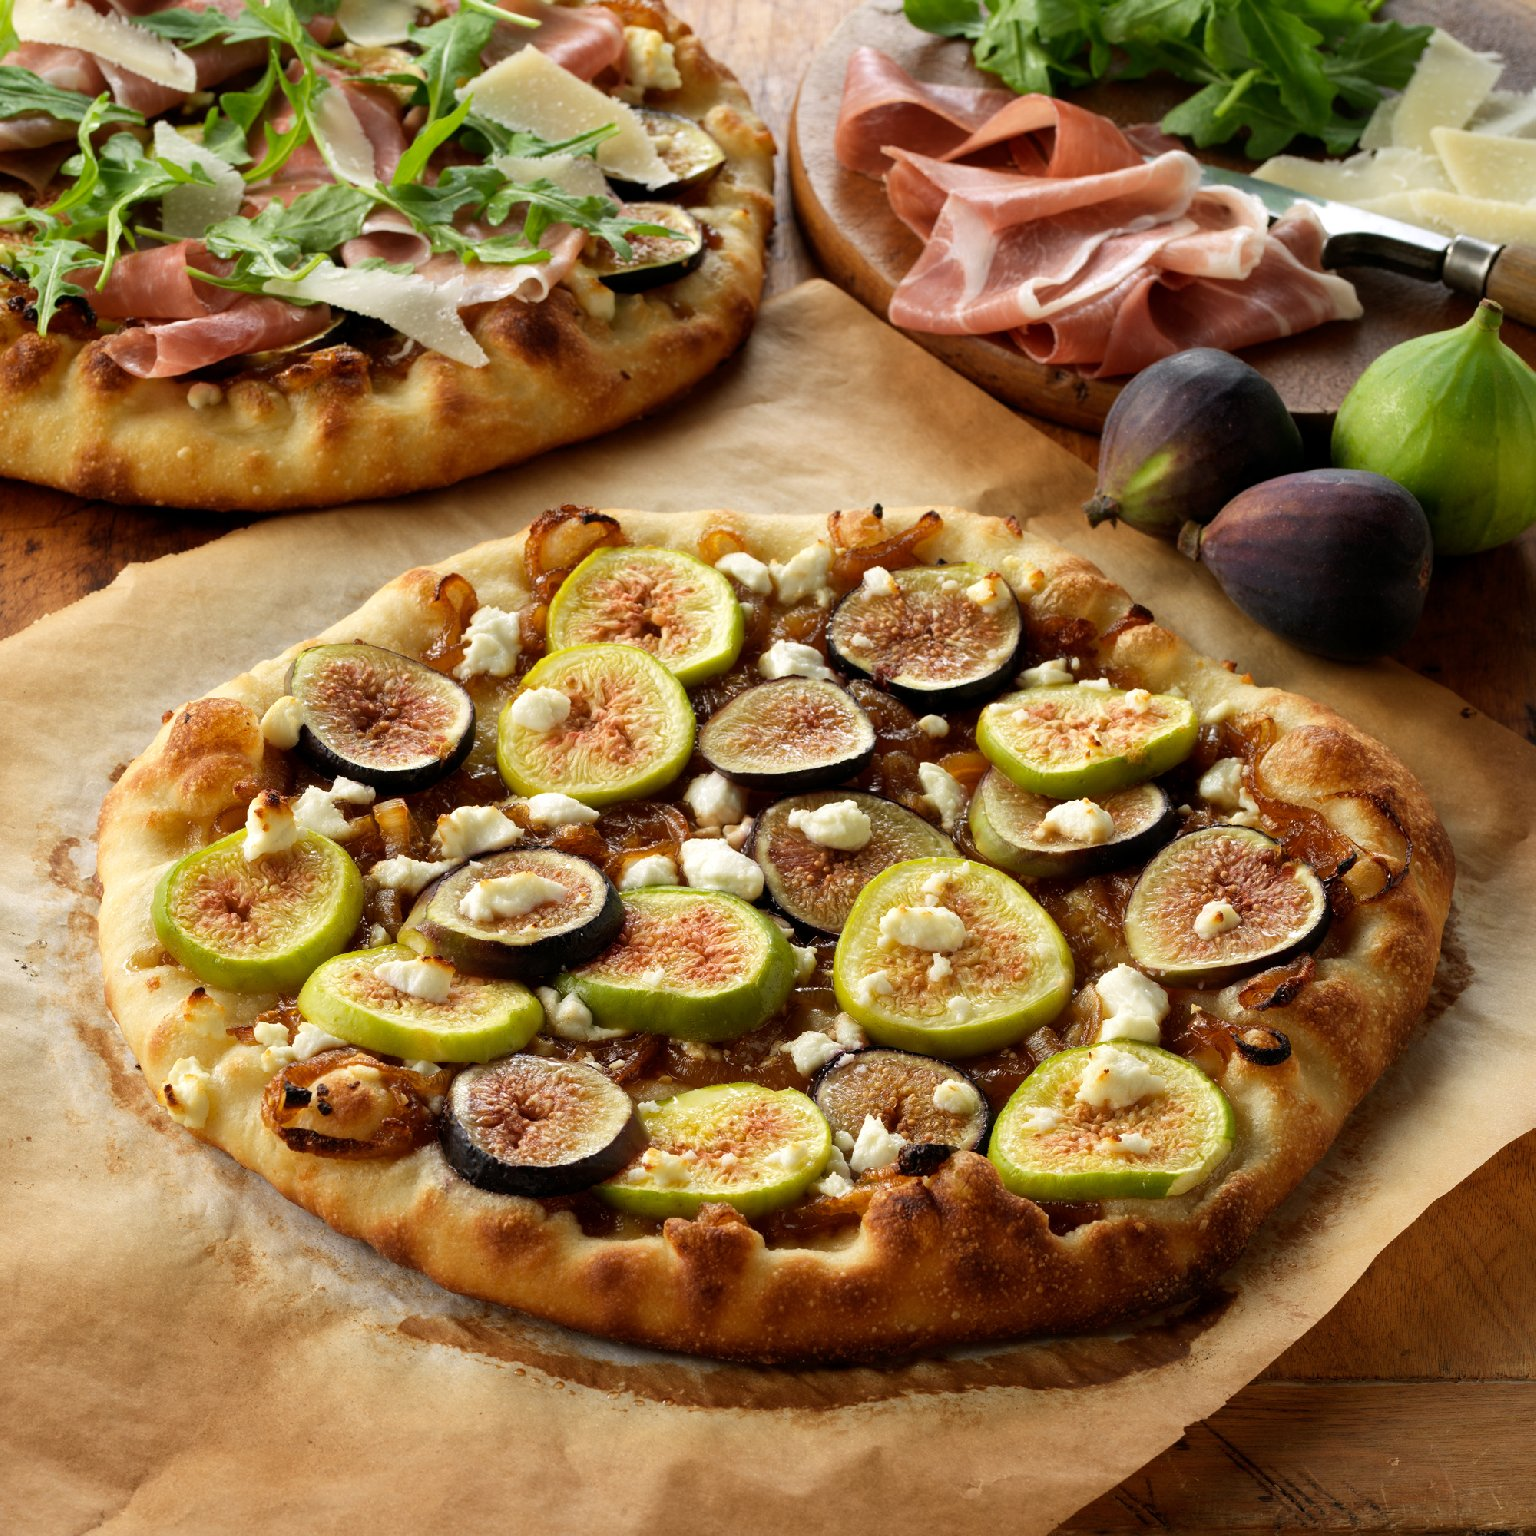 Mouth watering yet? As of now, you can only get a pizza like this in the summer and fall. Farmers in California are trying to change that by growing figs at least from April through February. Photo: Courtesy of California Fresh Fig Growers Association